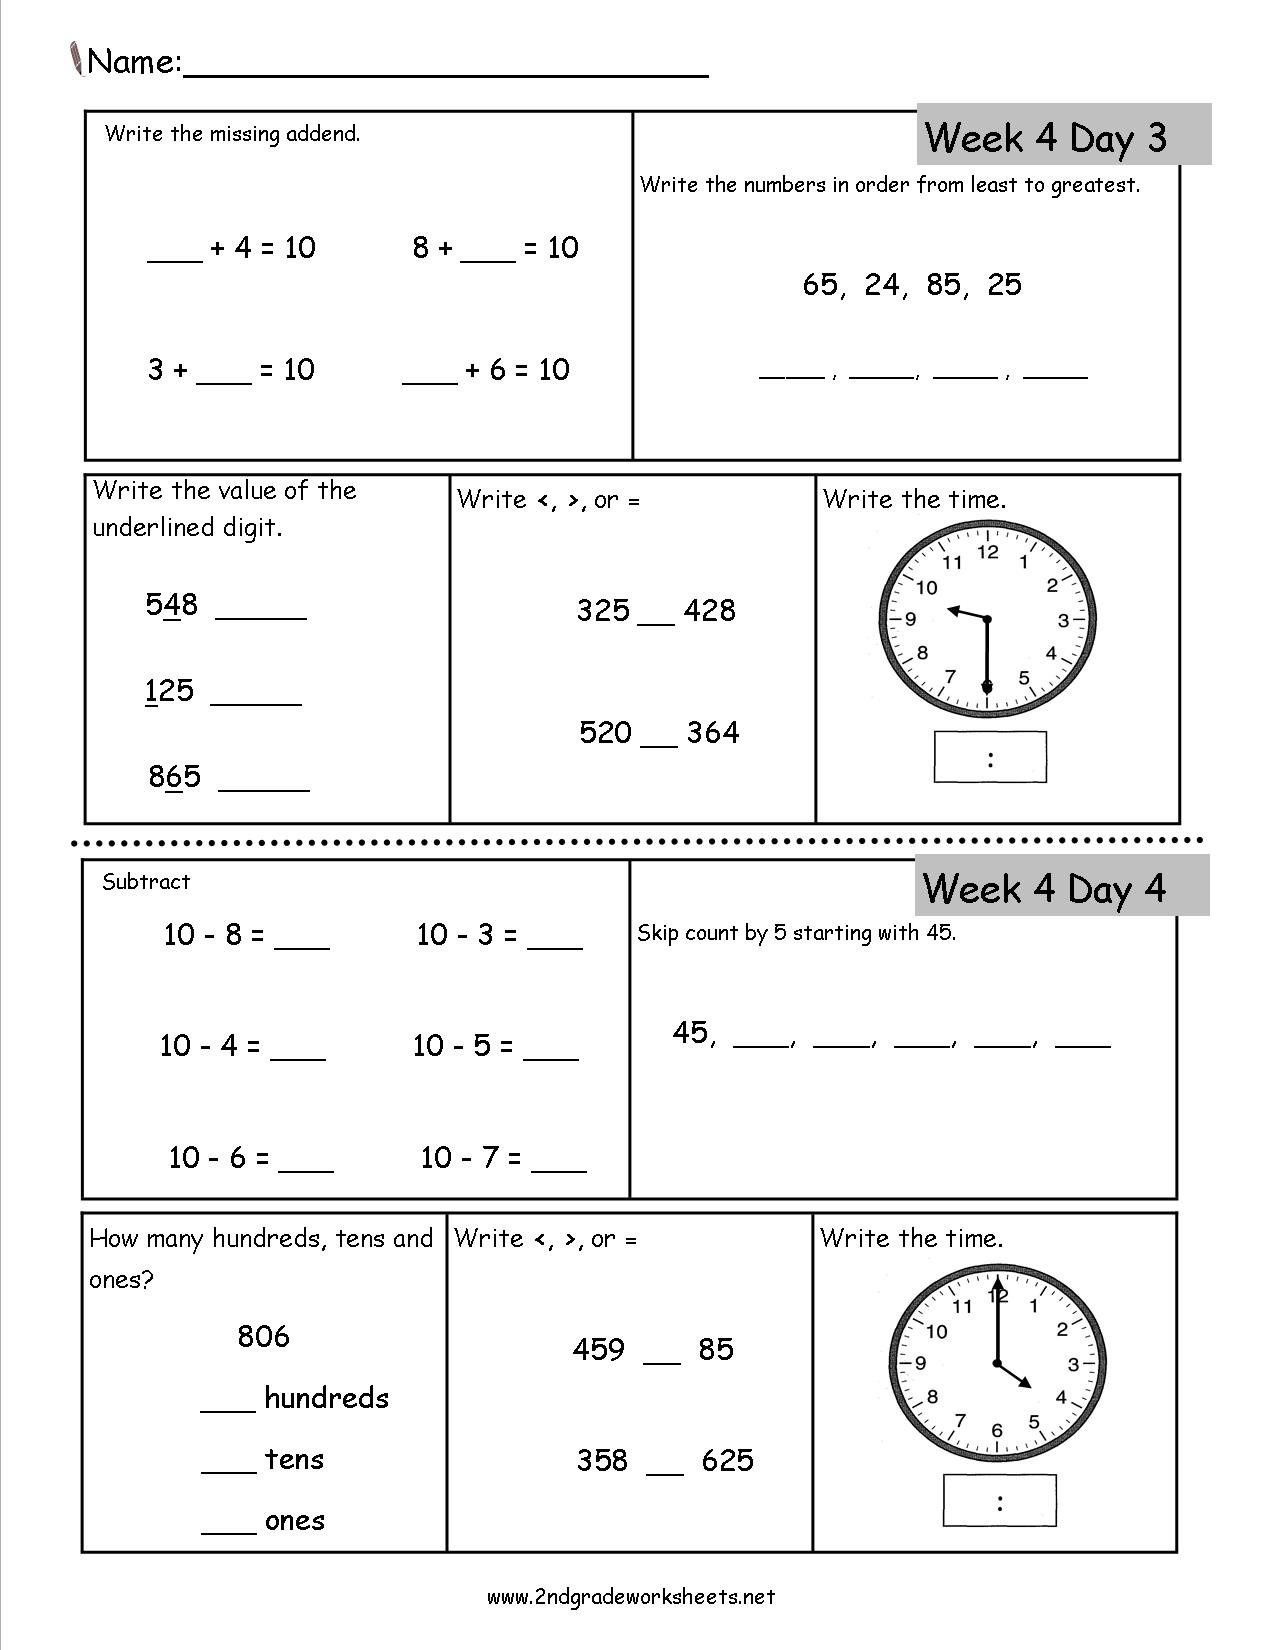 Free 2Nd Grade Daily Math Worksheets - Free Math Printables For 2Nd Grade